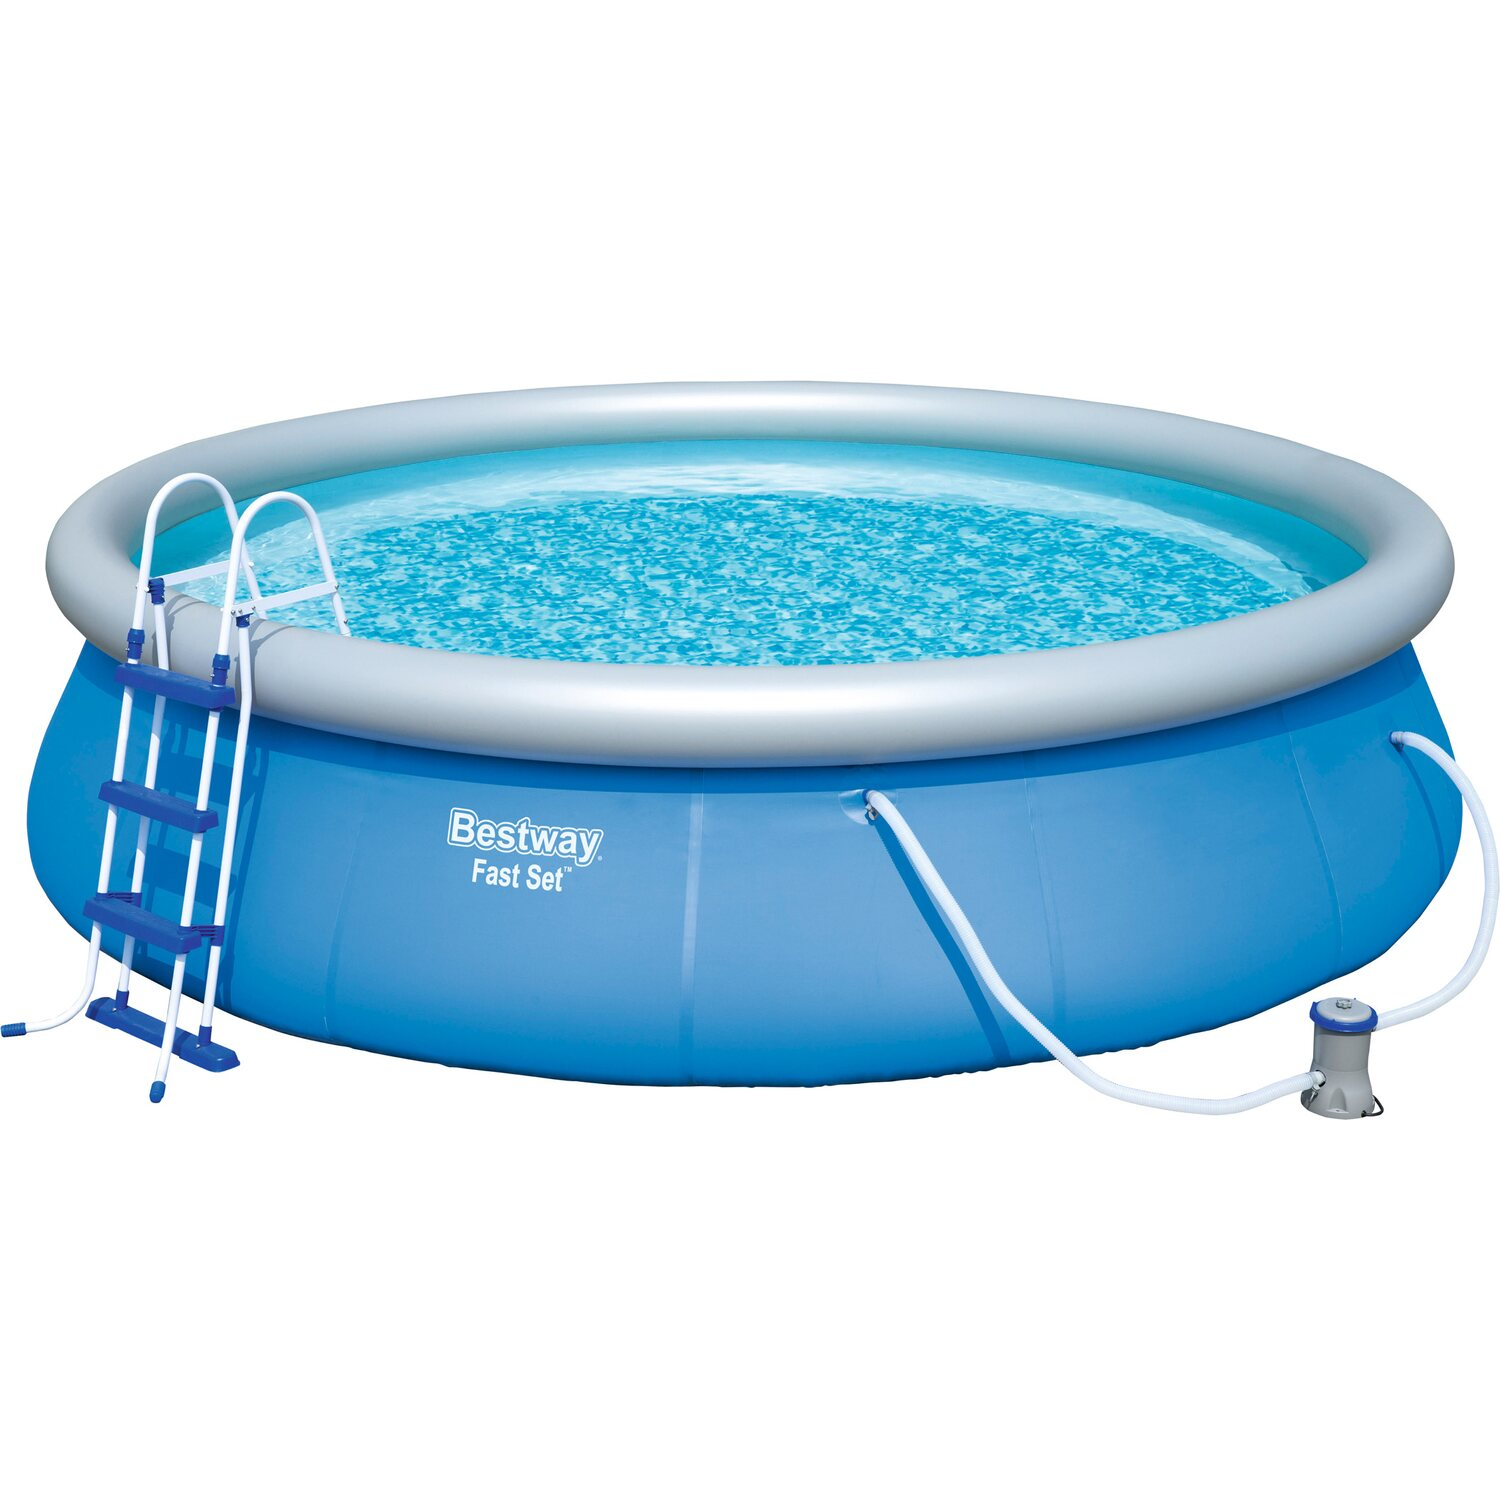 Bestway fast set pool kaufen bei obi for Pool staubsauger obi